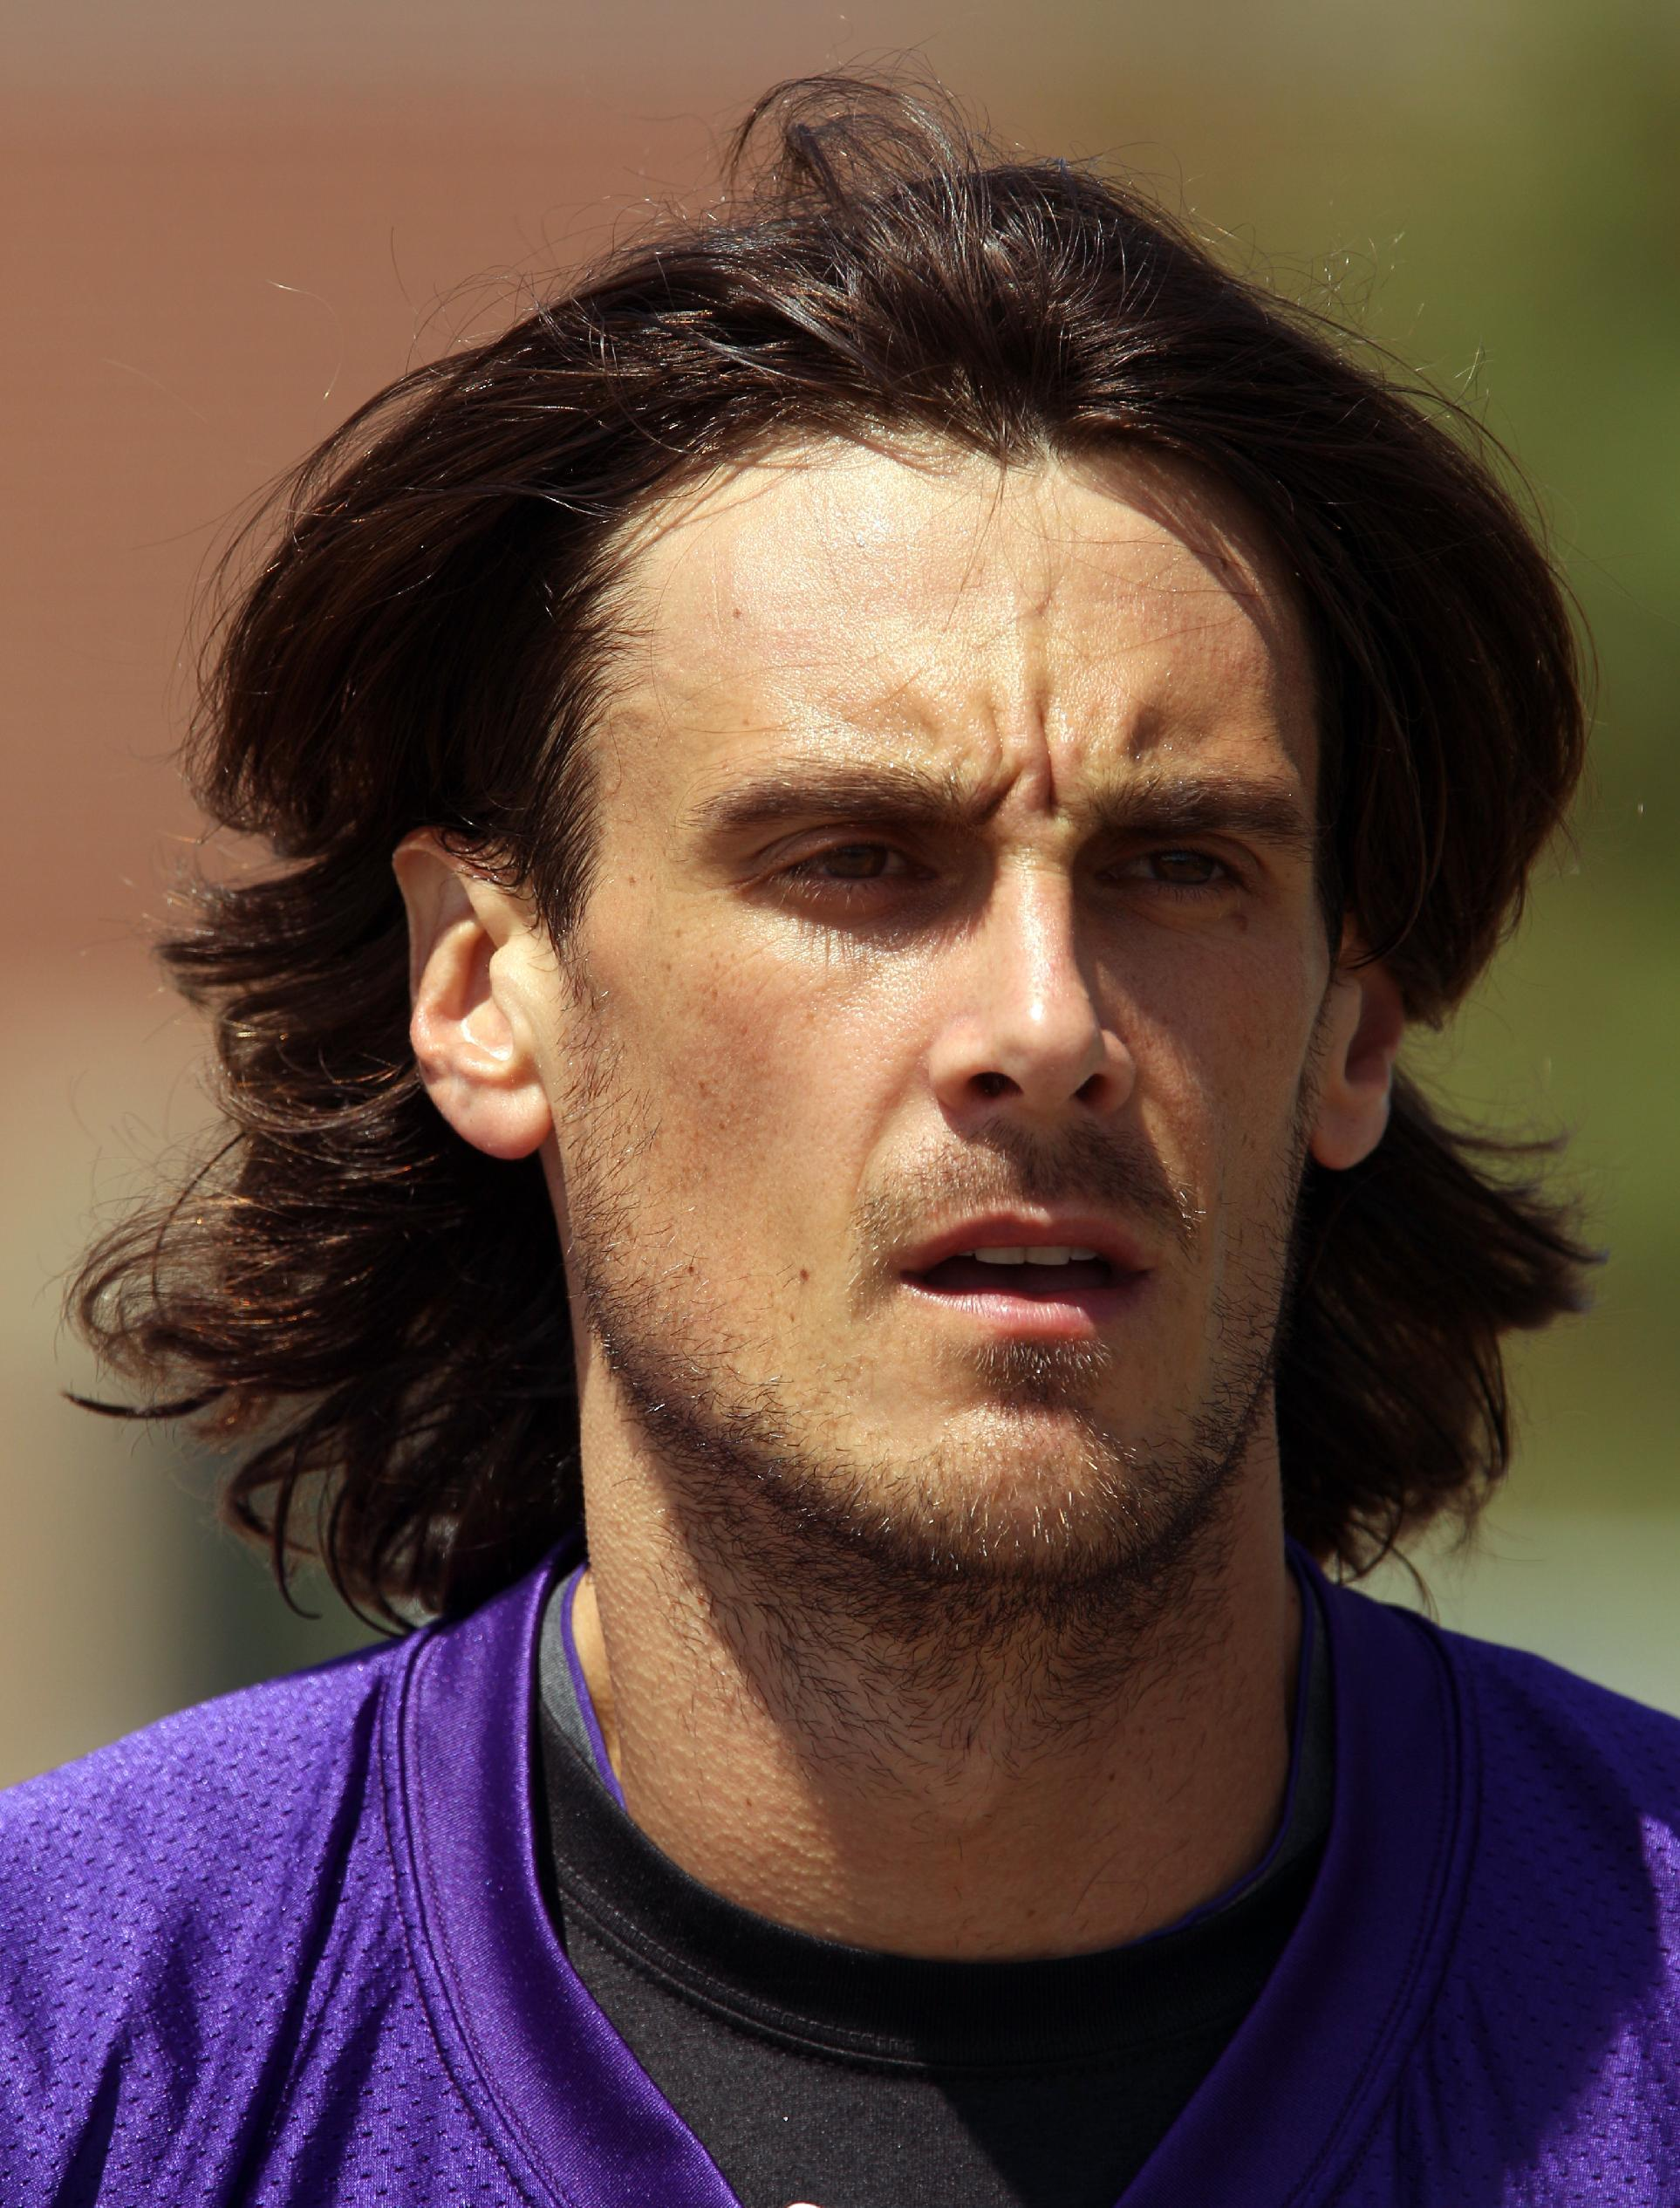 In this July 28, 2012 photo, Minnesota Vikings punter Chris Kluwe is shown at NFL football training camp in Mankato, Minn. NFL punters are only seen on fourth down, and heard from less than that. But with a constitutional gay marriage ban on Minnesota's ballot this fall, Kluwe has emerged as a high-profile gay rights champion _ and a symbol of changing attitudes toward homosexuality in the sports world. (AP Photo/Genevieve Ross)